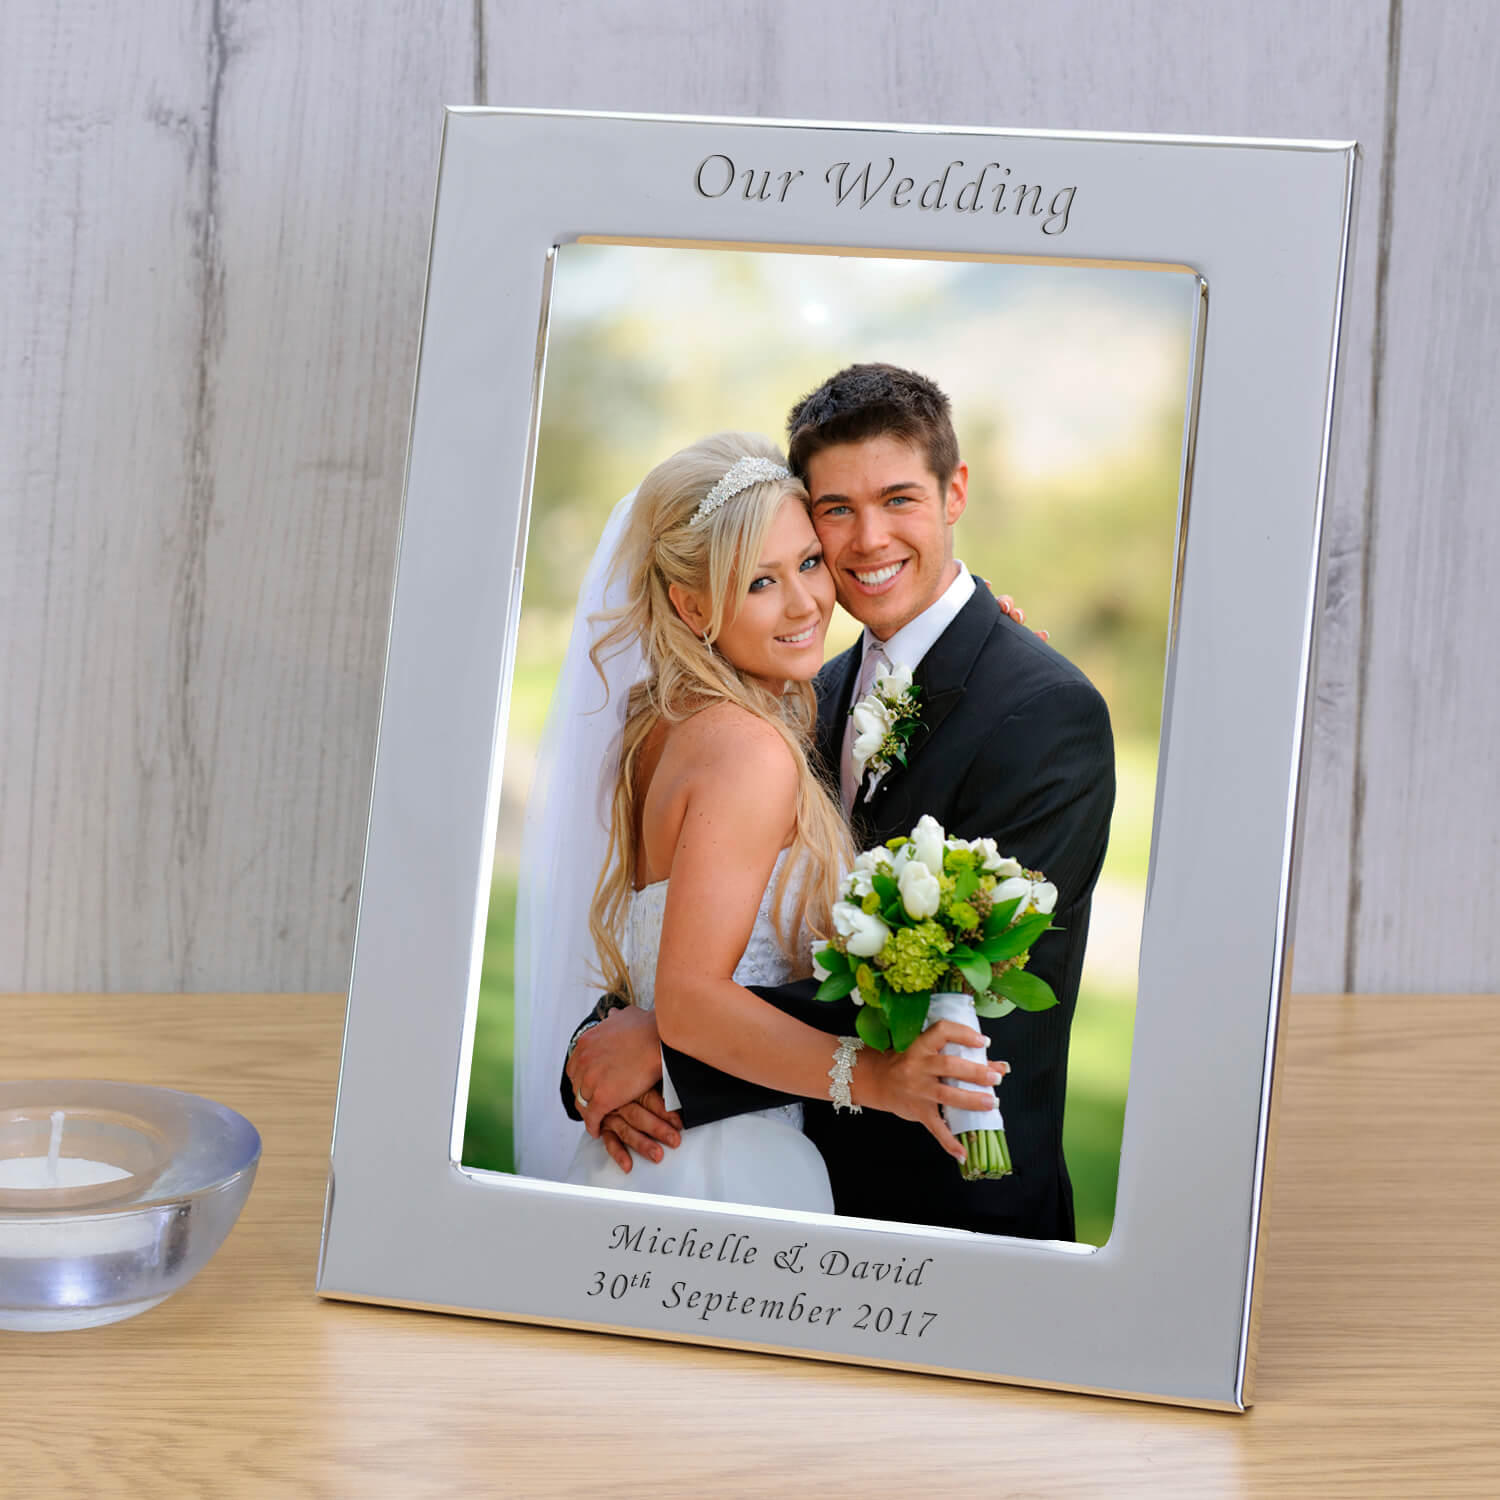 Personalised Silver Plated Photo Frame – Our Wedding